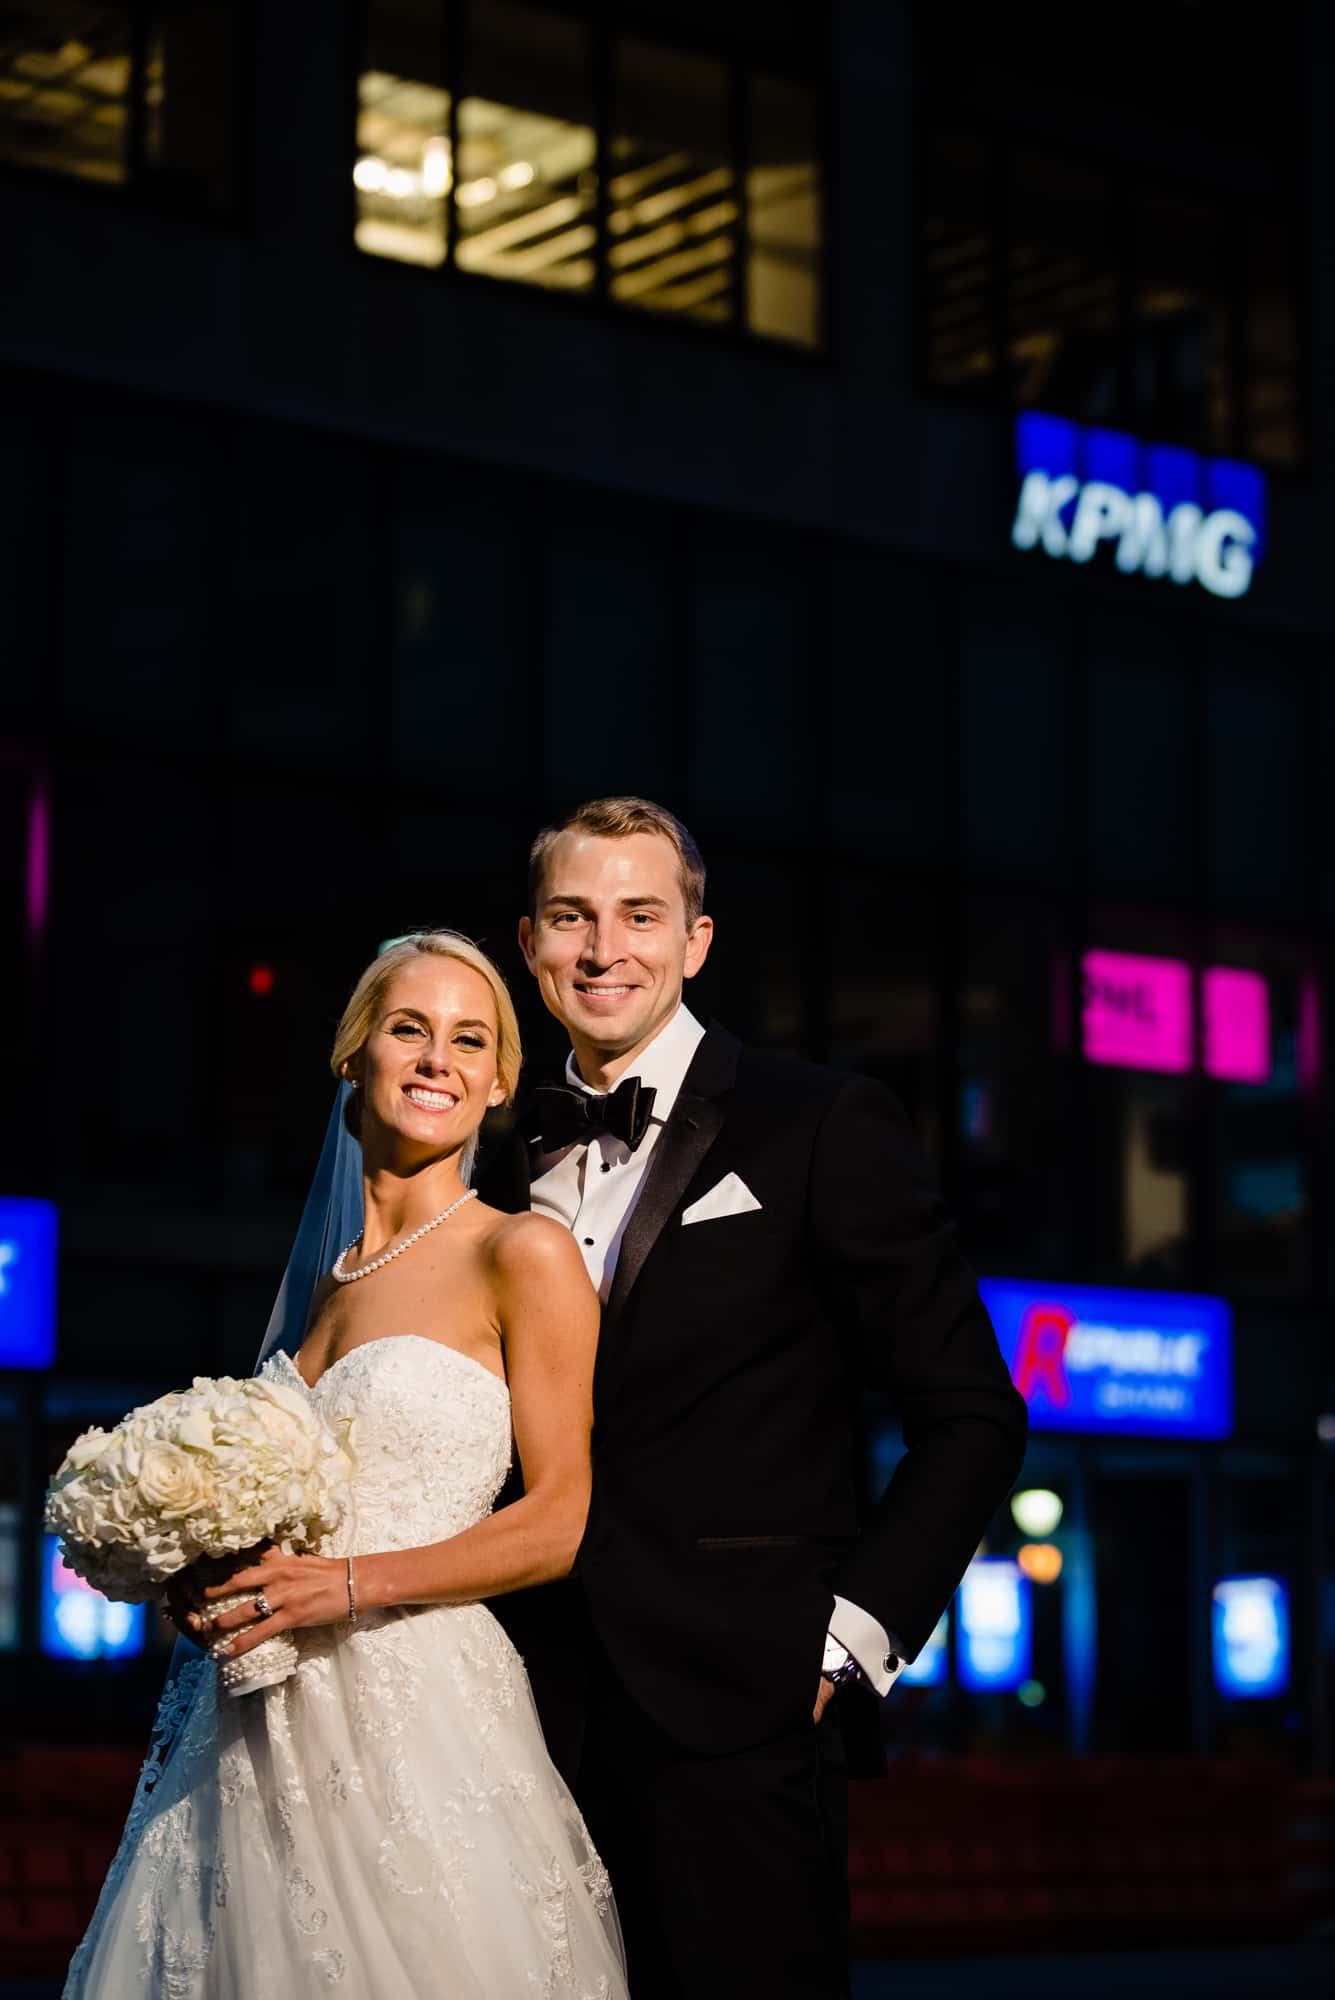 bride and groom in front of KPMG building